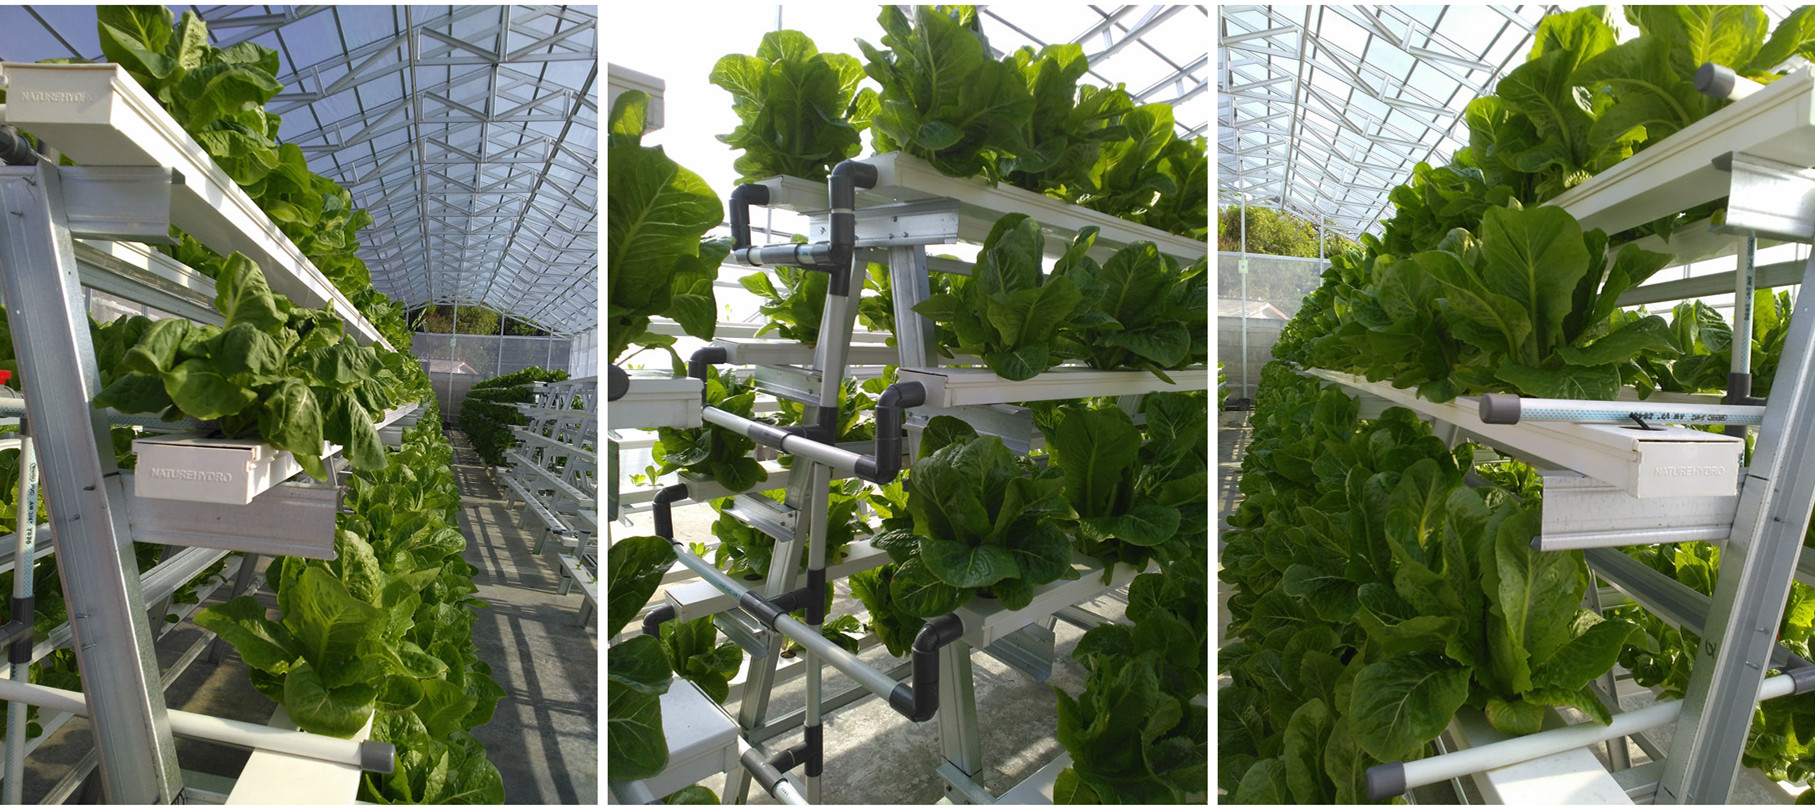 Plastic pvc pipe hydroponic nft grow gutter system for greenhouse